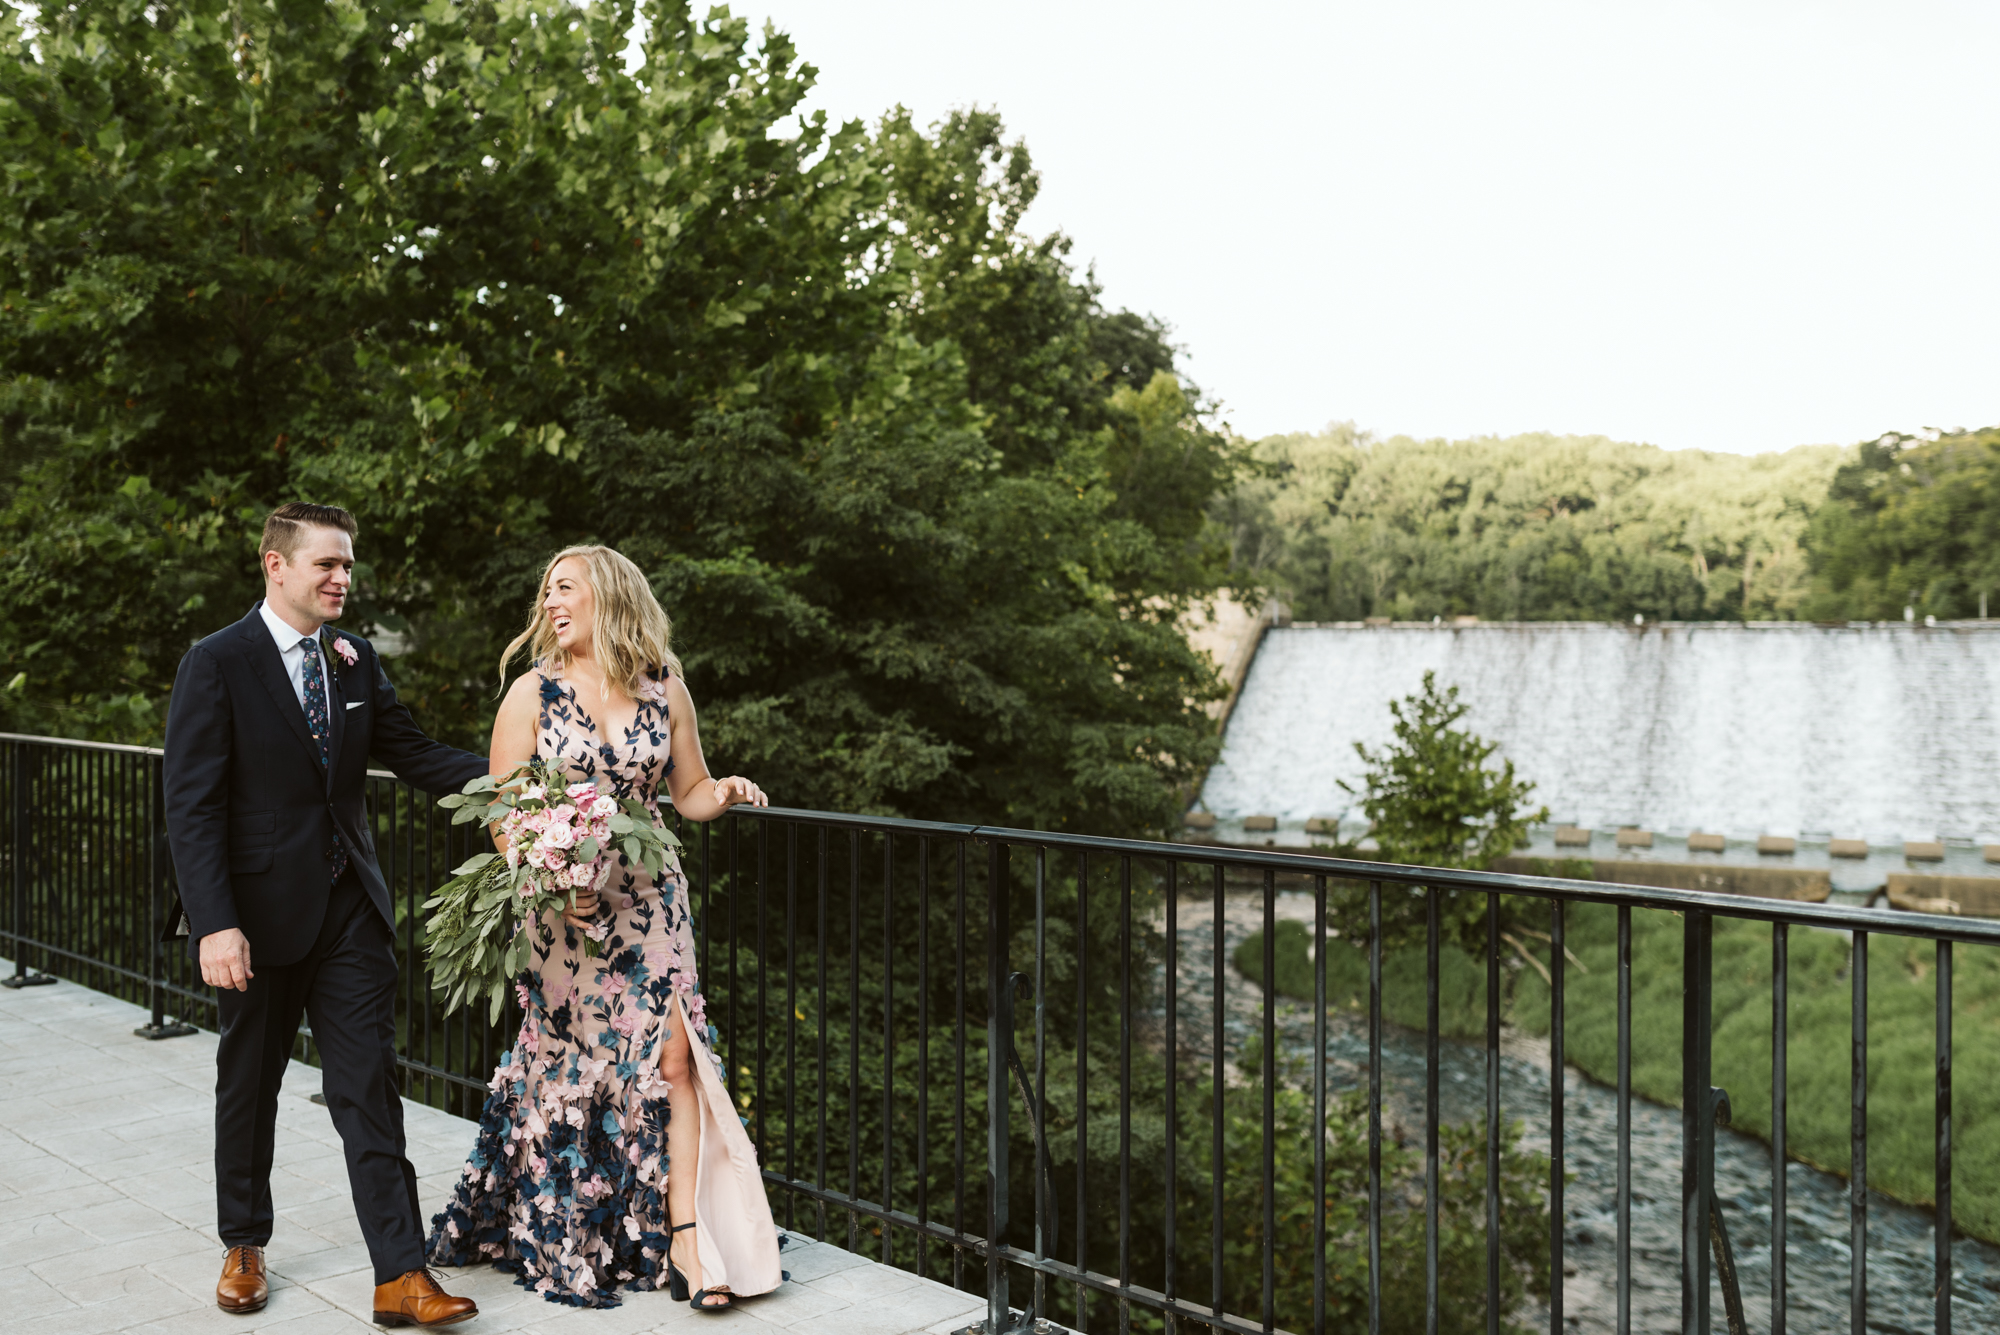 Pop-up Ceremony, Outdoor Wedding, Casual, Simple, Lake Roland, Baltimore, Maryland Wedding Photographer, Laid Back, DIY Flowers, September Wedding, Bride and Groom Walking Over Bridge